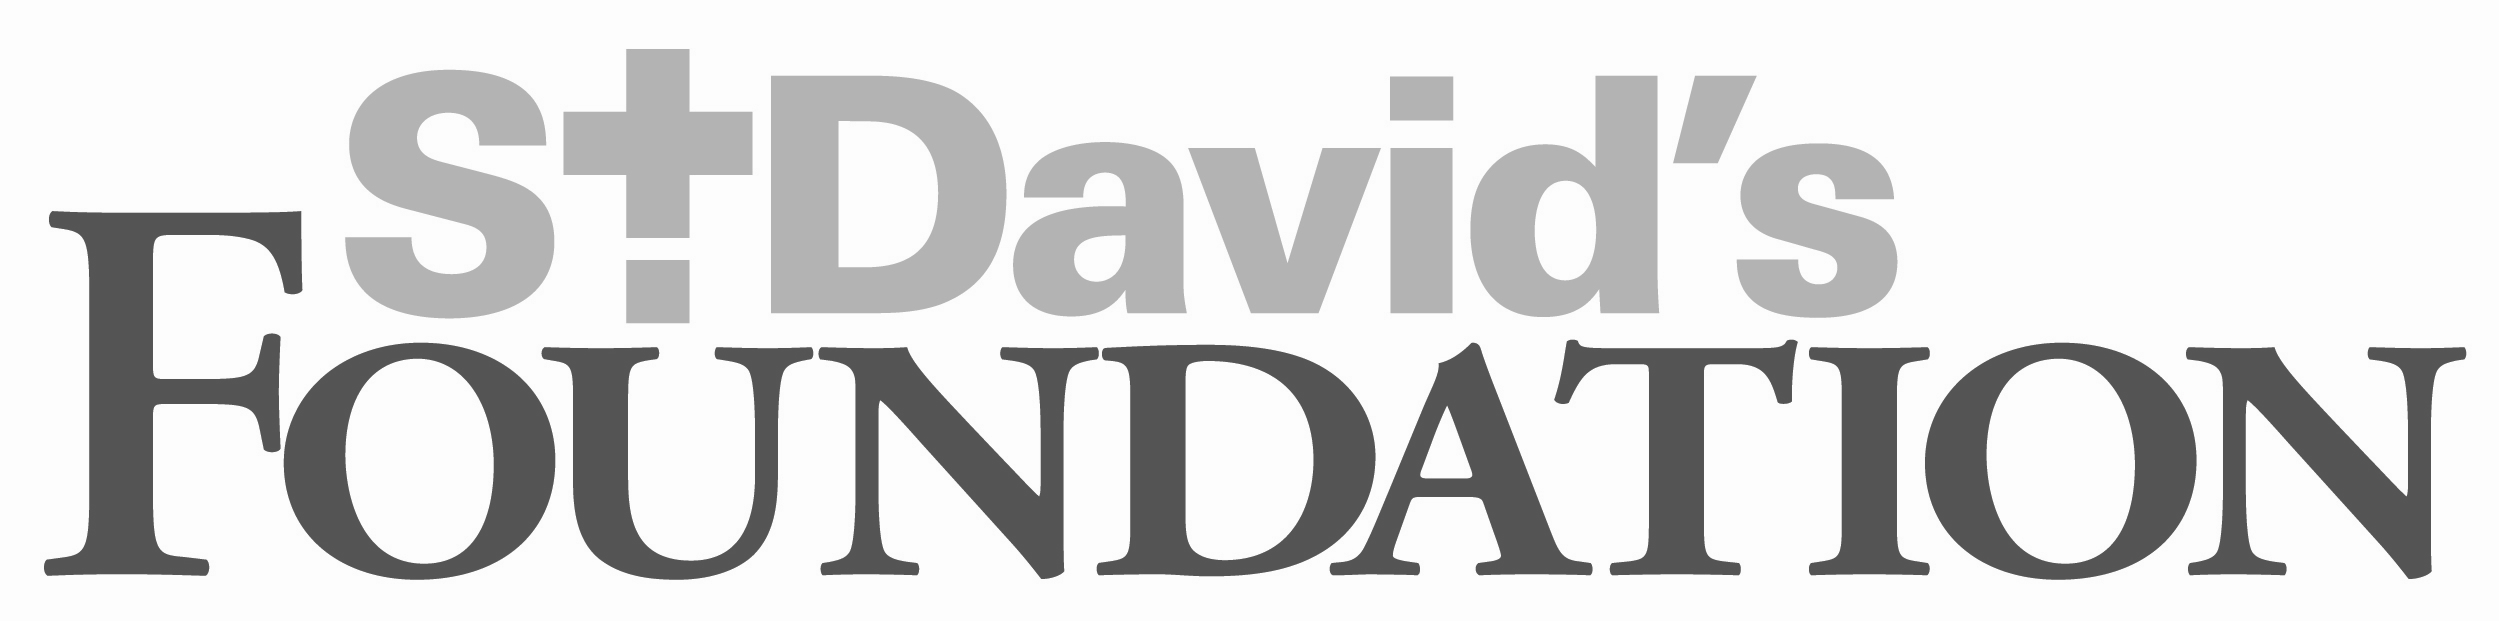 st_davids_foundation_new2.png